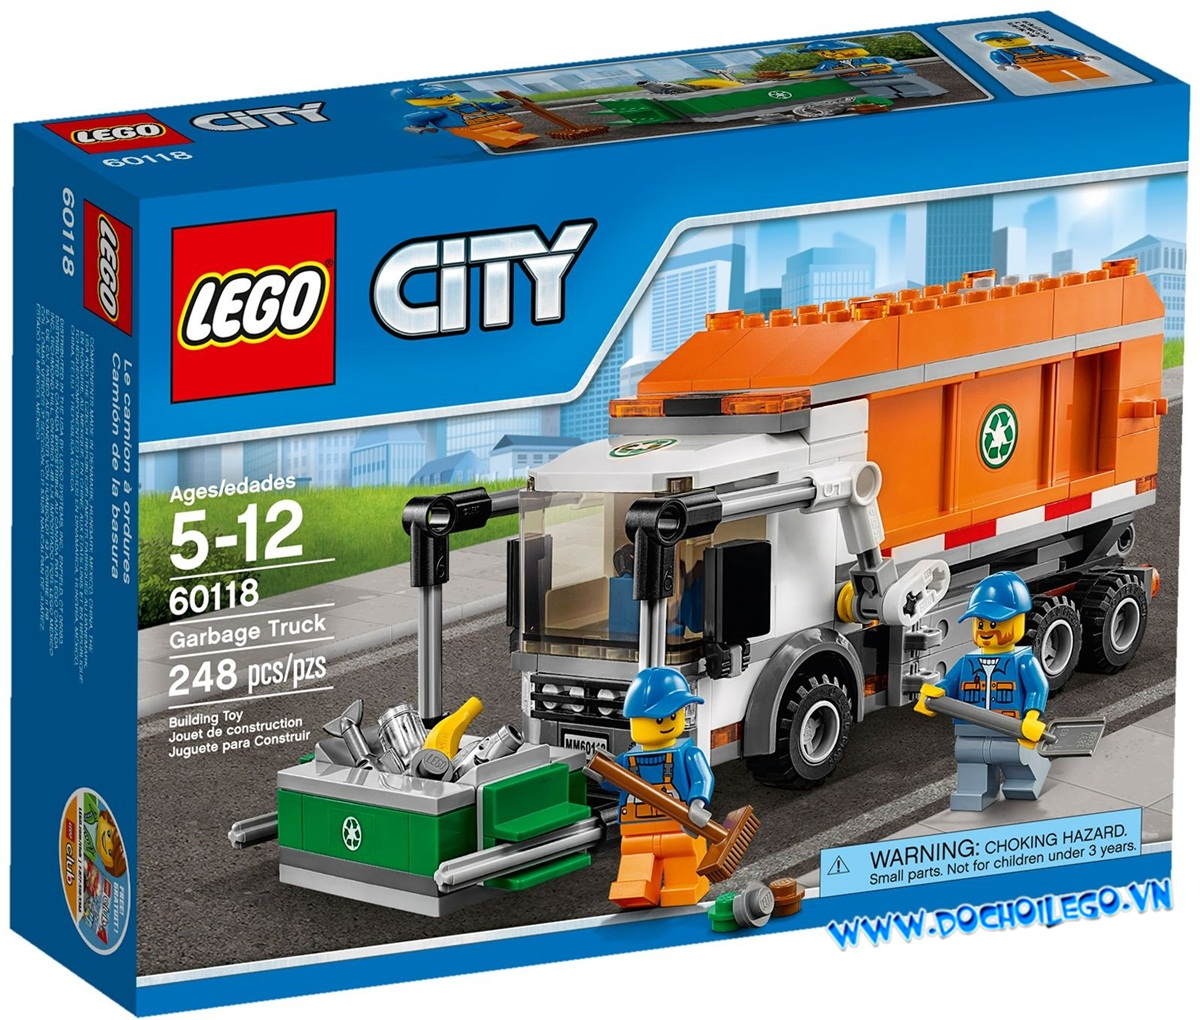 60118 LEGO City Garbage Truck